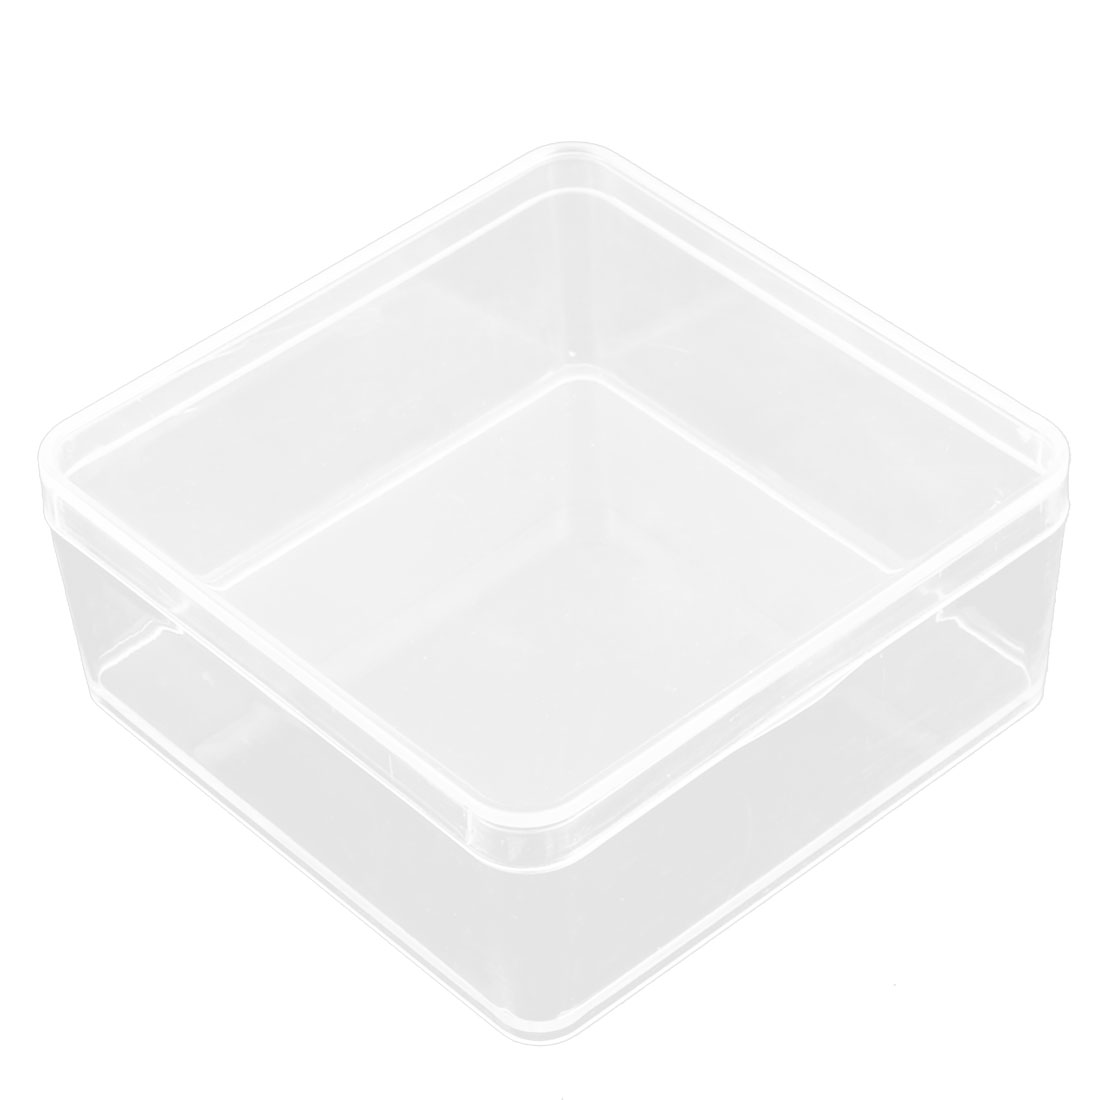 Food Sundries Plastic Storage Box Display Case Organizer Conatiner Clear